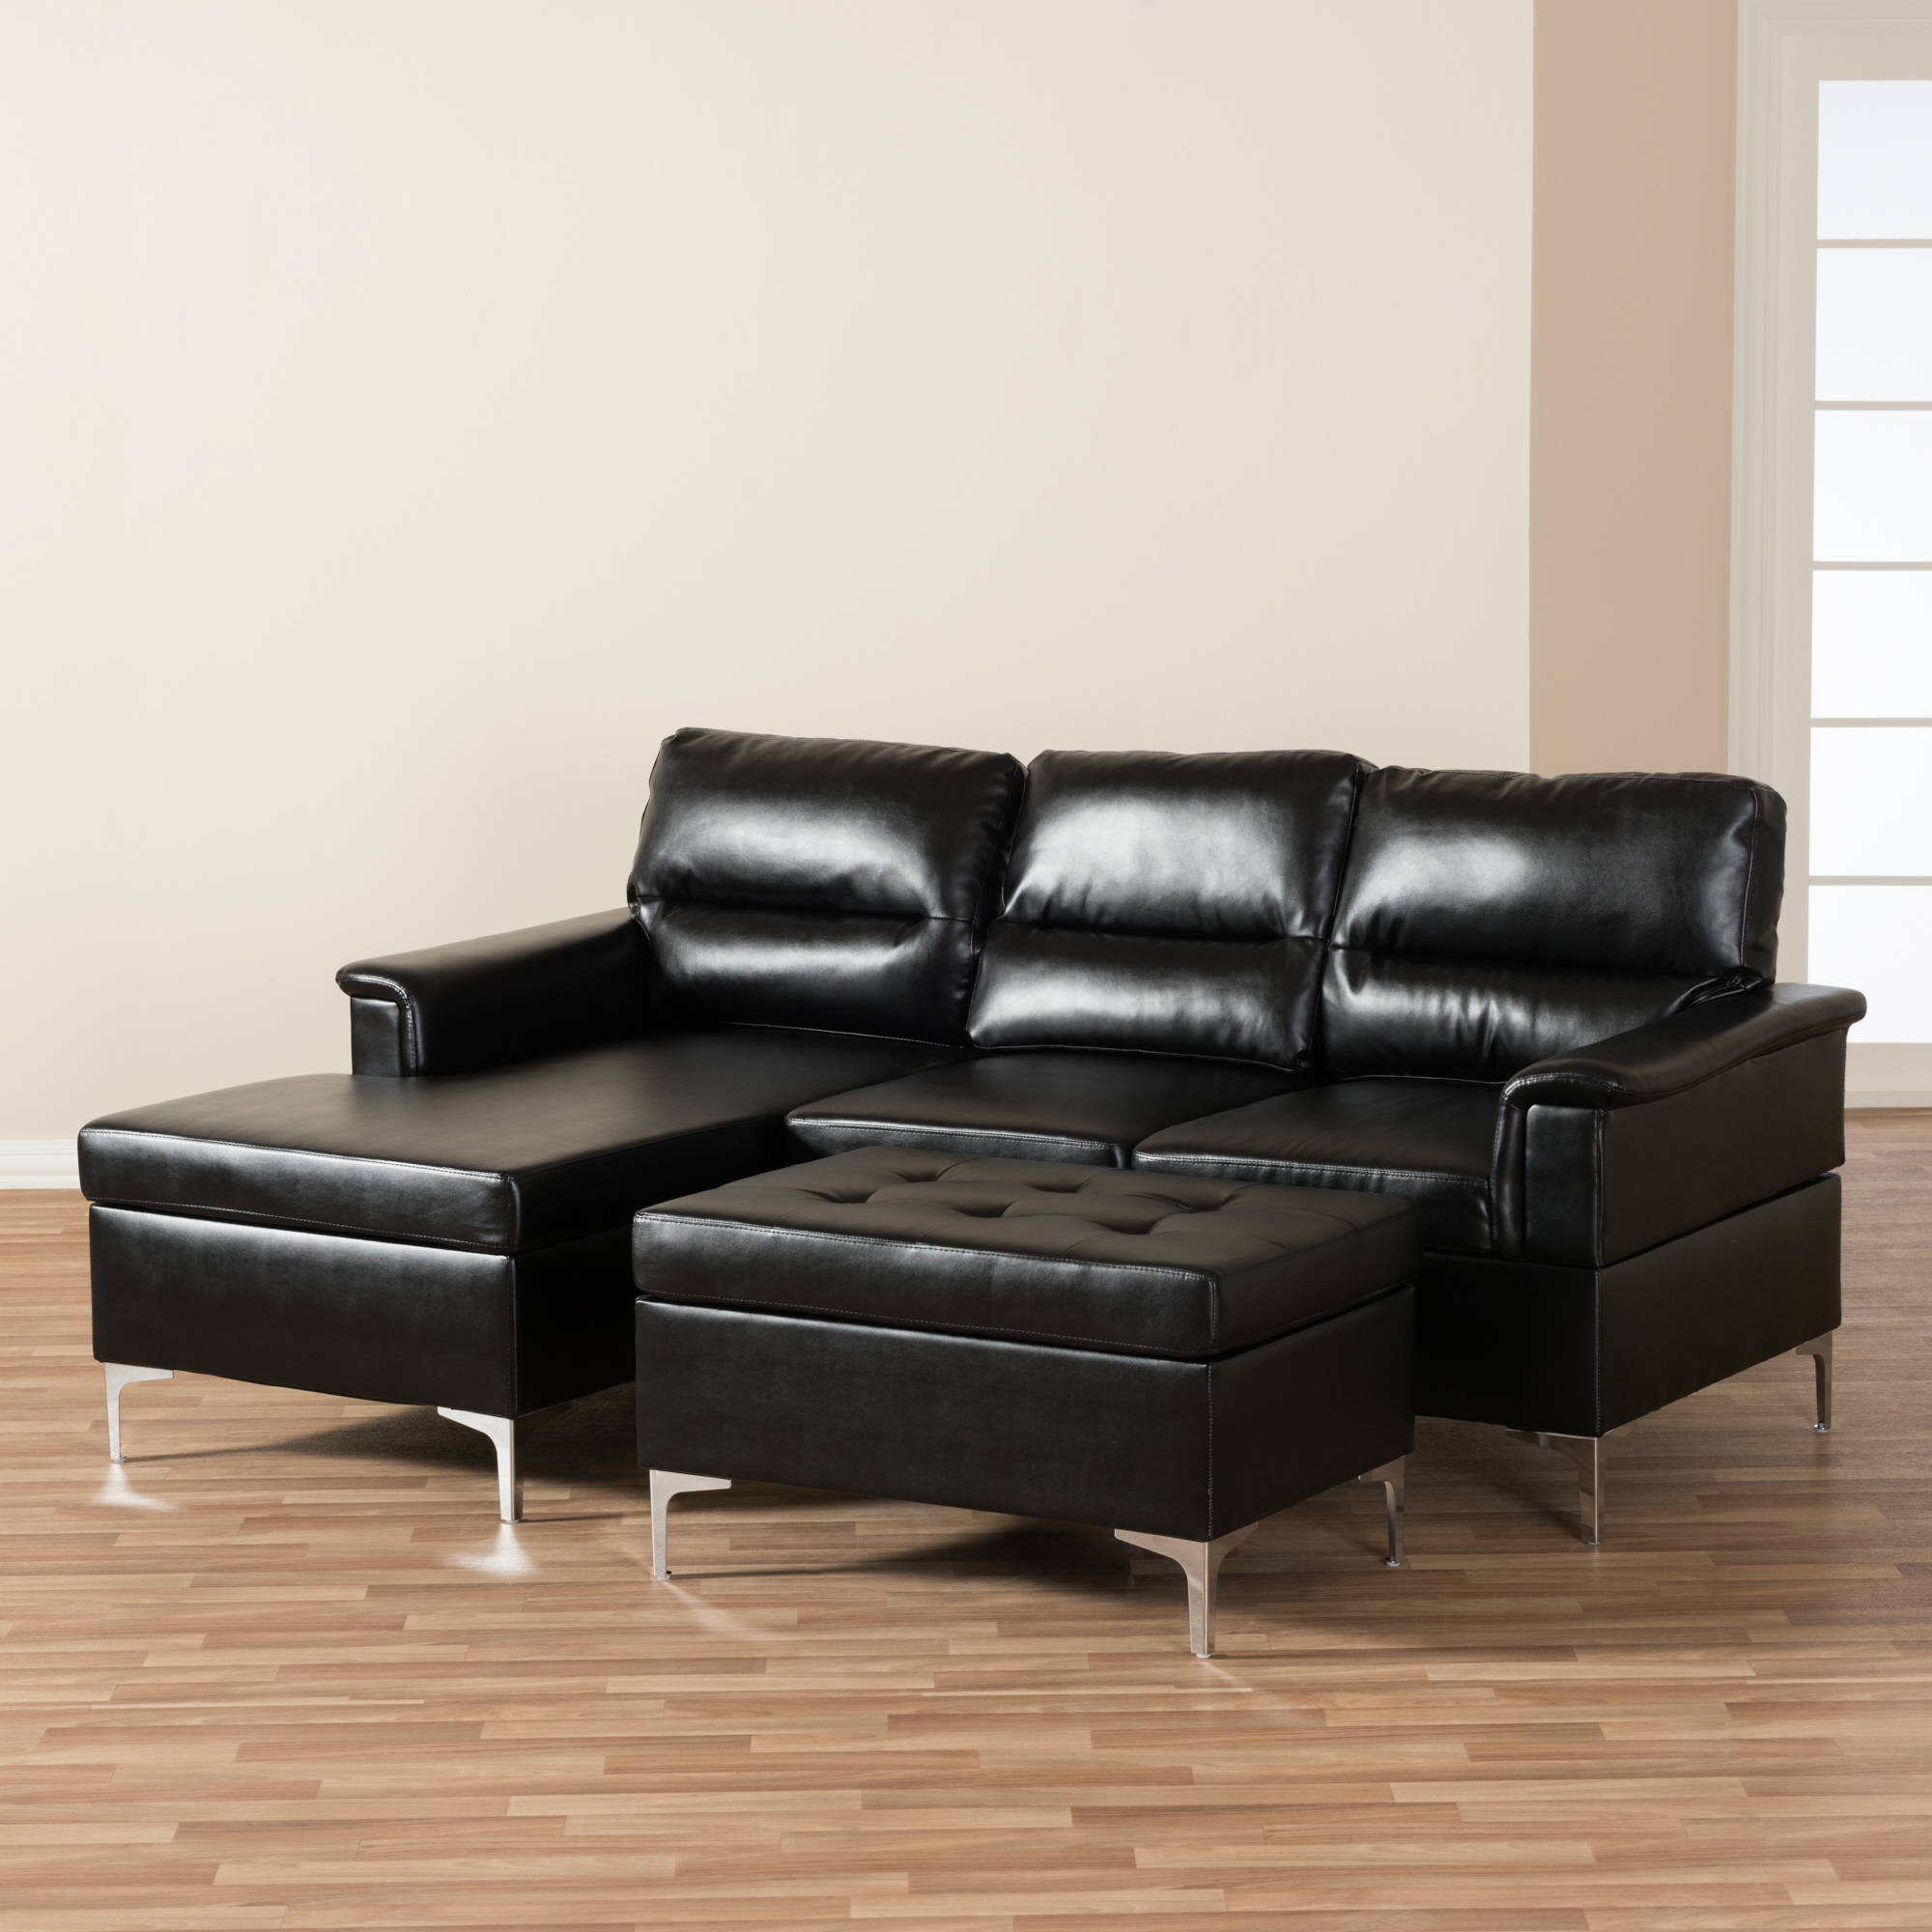 ... Baxton Studio Kinsley Modern And Contemporary Black Faux Leather  Upholstered 3 Piece Sectional Sofa And